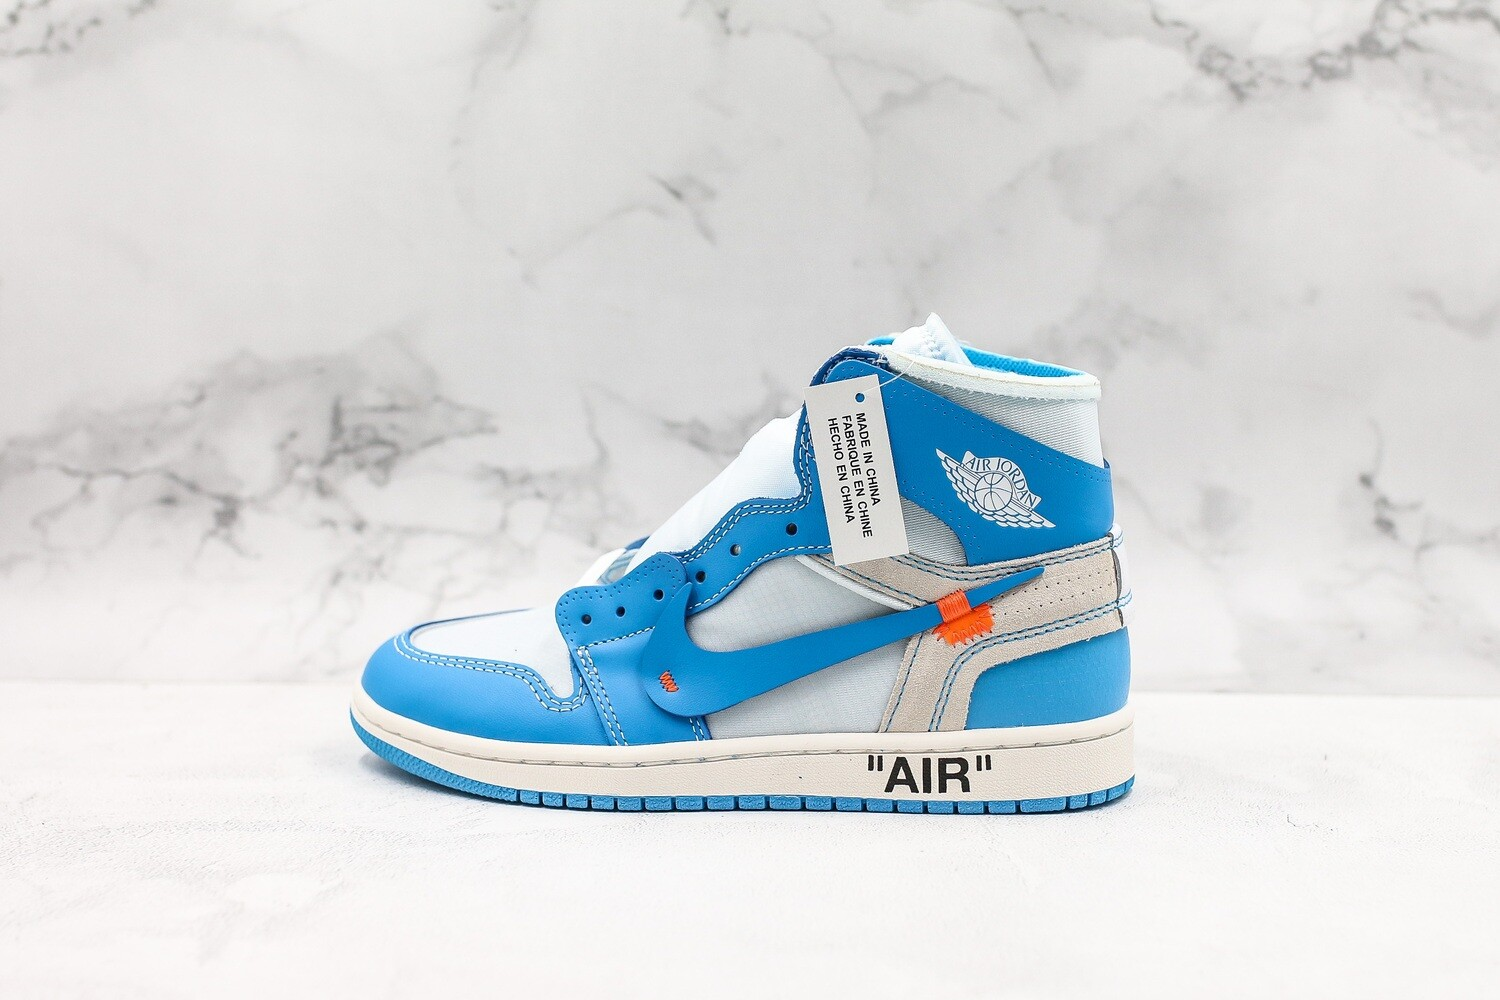 Men's/Women's Air Jordan 1 AJ1 Retro High Off-White 'UNC' Basketball Shoes Casual Life sneakers